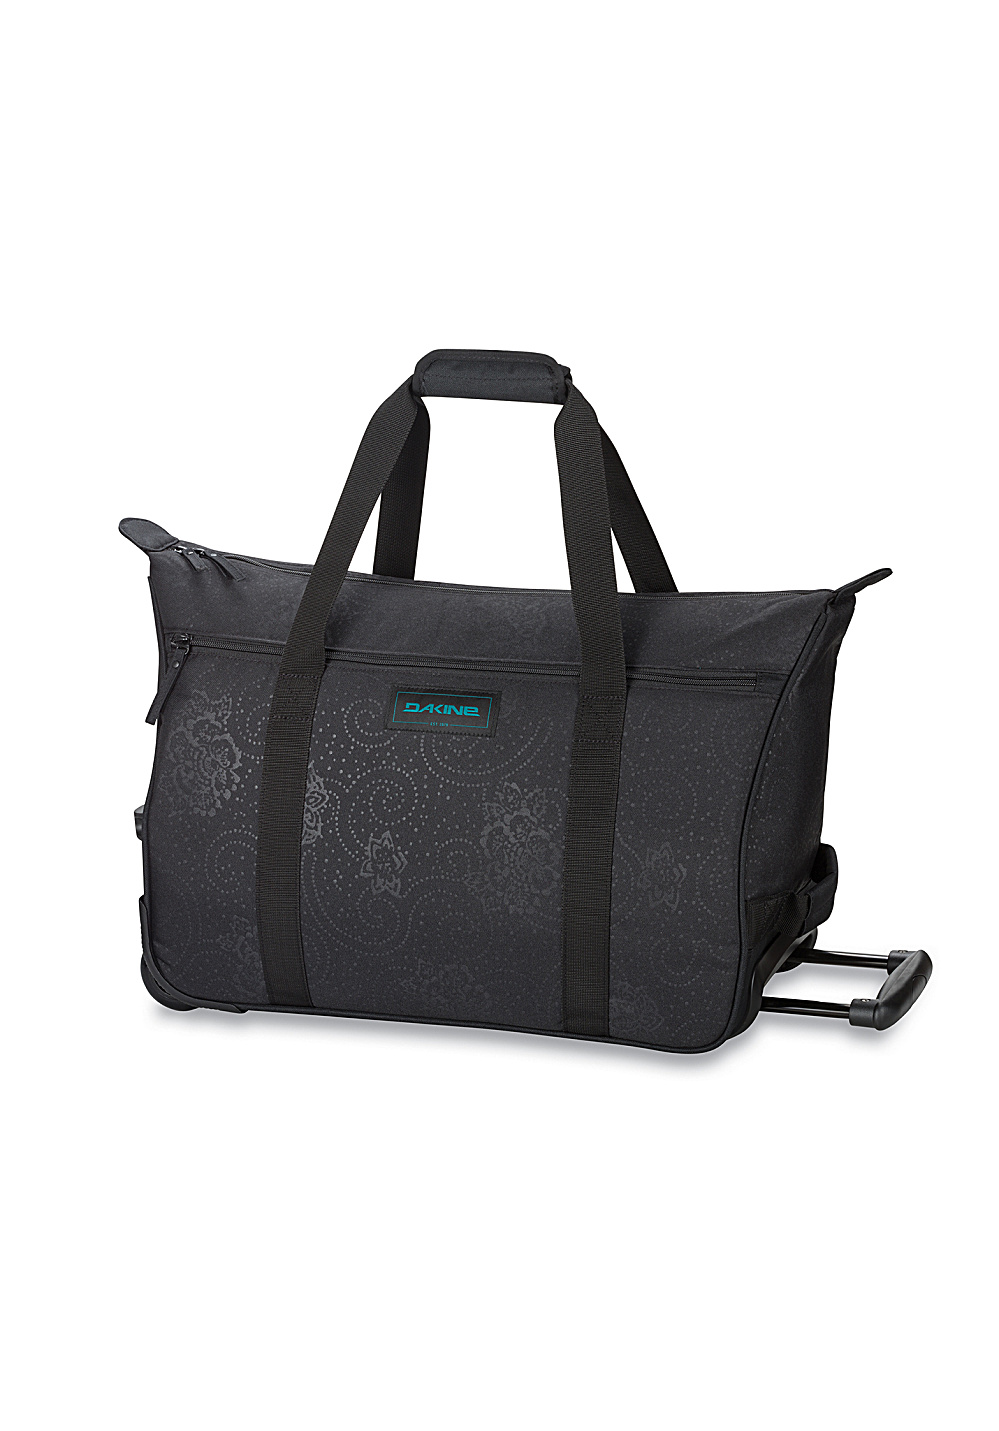 dakine valise 35l sac de voyage pour femme noir planet sports. Black Bedroom Furniture Sets. Home Design Ideas